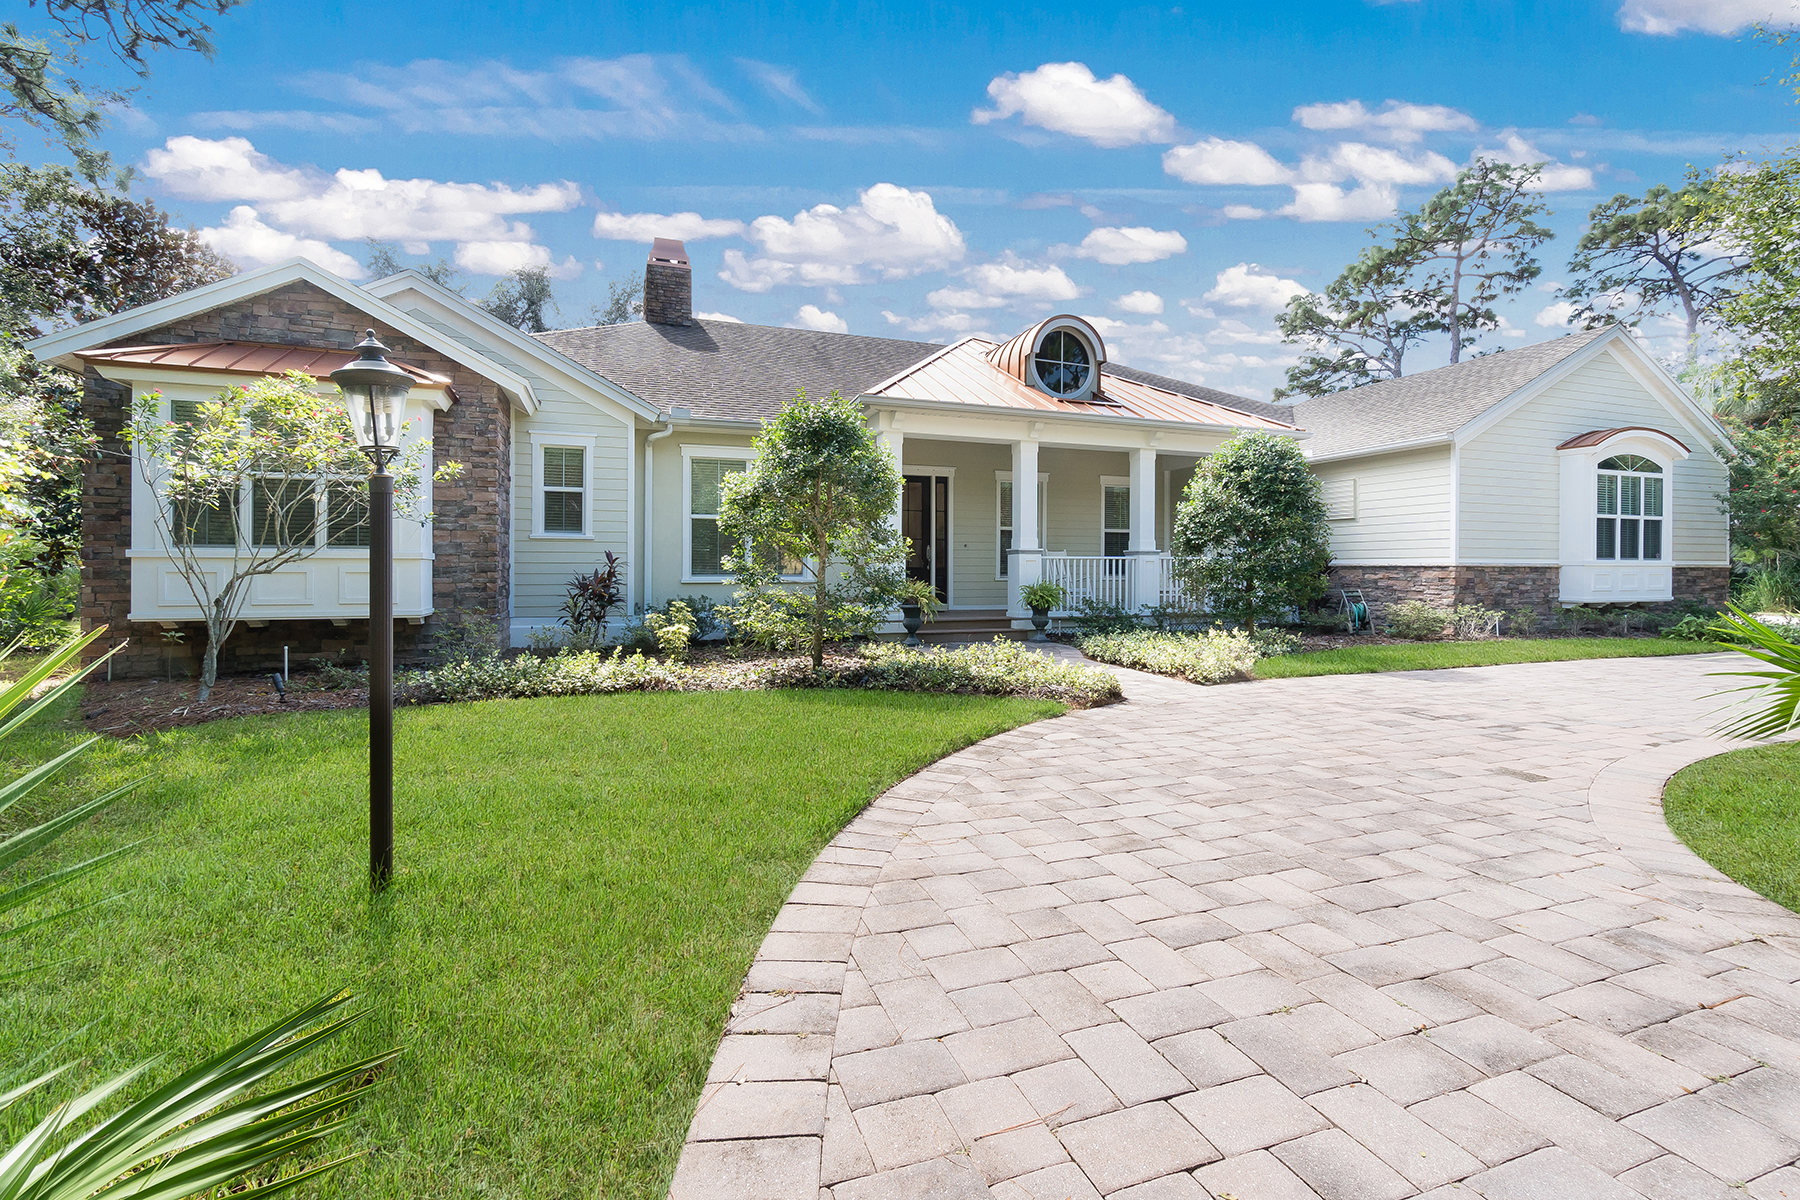 Single Family Home for Sale at RIVER FOREST 5959 River Forest Cir Bradenton, Florida, 34203 United States